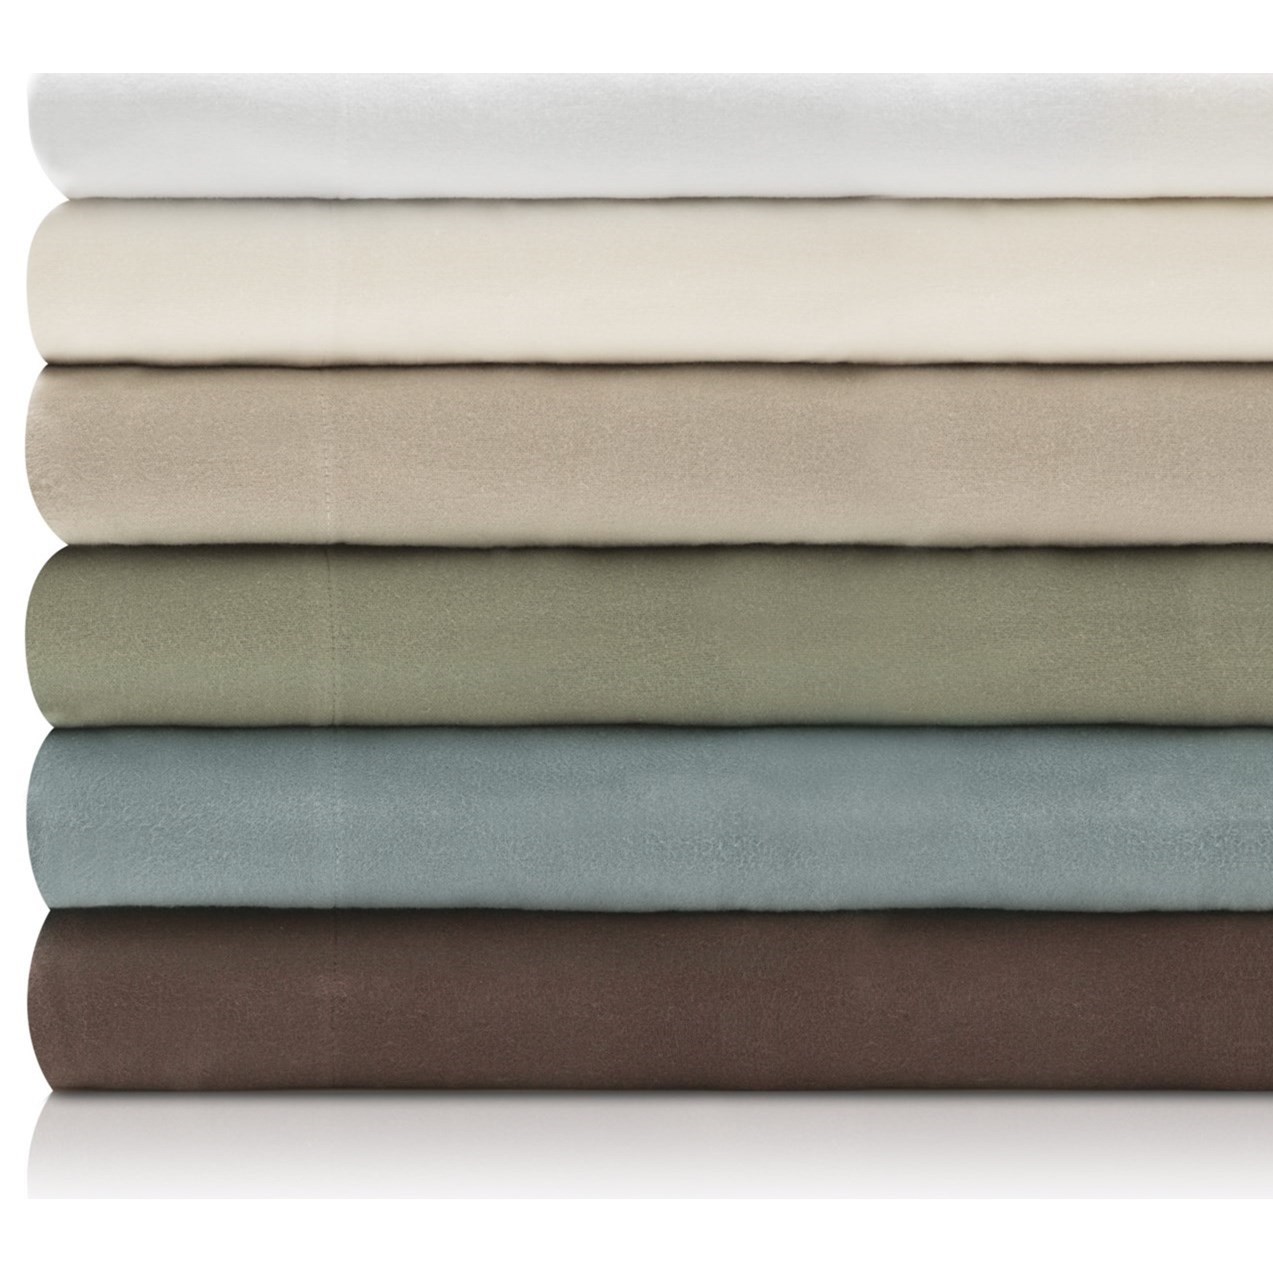 Malouf Portuguese Flannel Cal King Woven™ Portuguese Flannel Sheet Set - Item Number: WO19CKPNFS